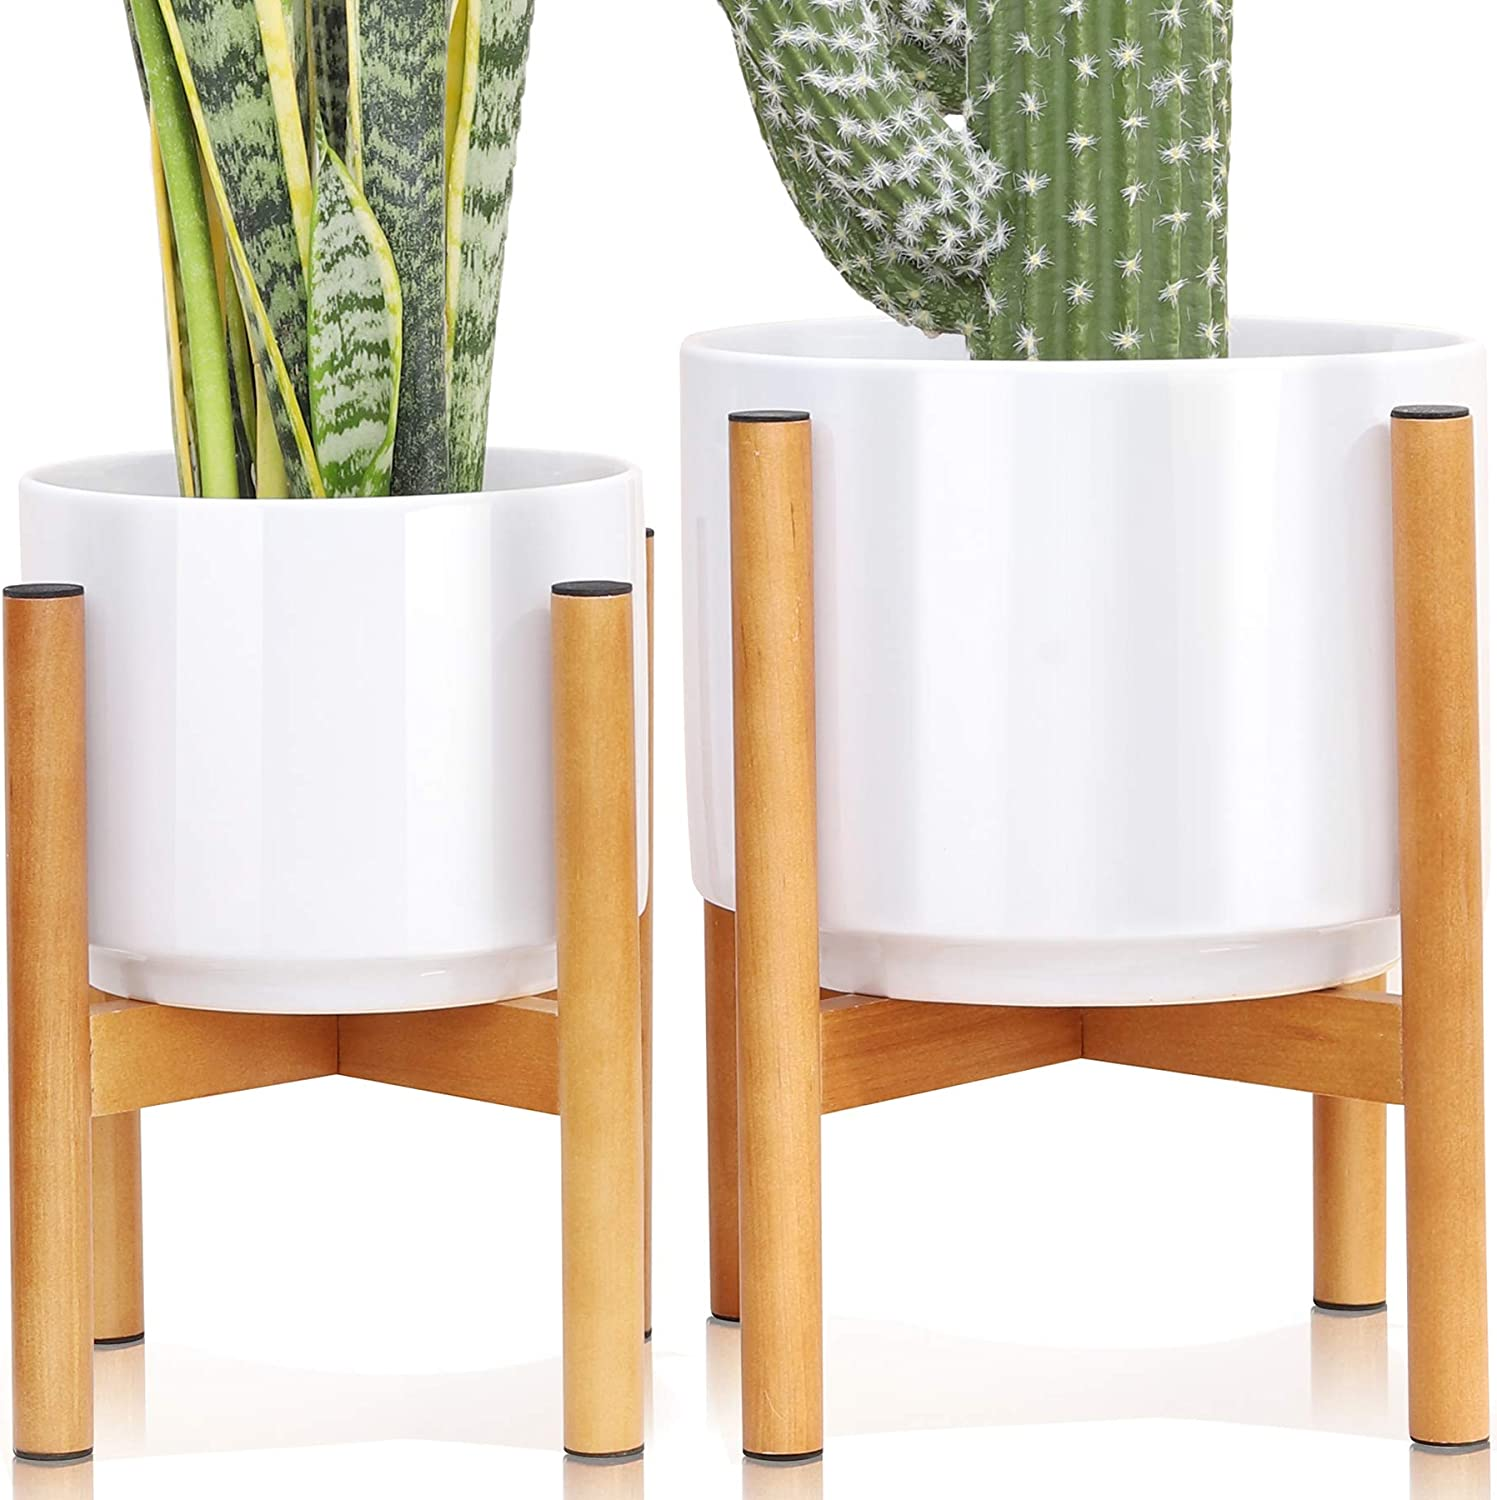 Set 2 Indoor Mid Century Modern Ceramic Planter with Wood Stand Outdoor About 8 Inch & 10 Inch Diameter, Round White Standing Planters with Drainage and a Plug, Outdoor White Garden Cactus Planters